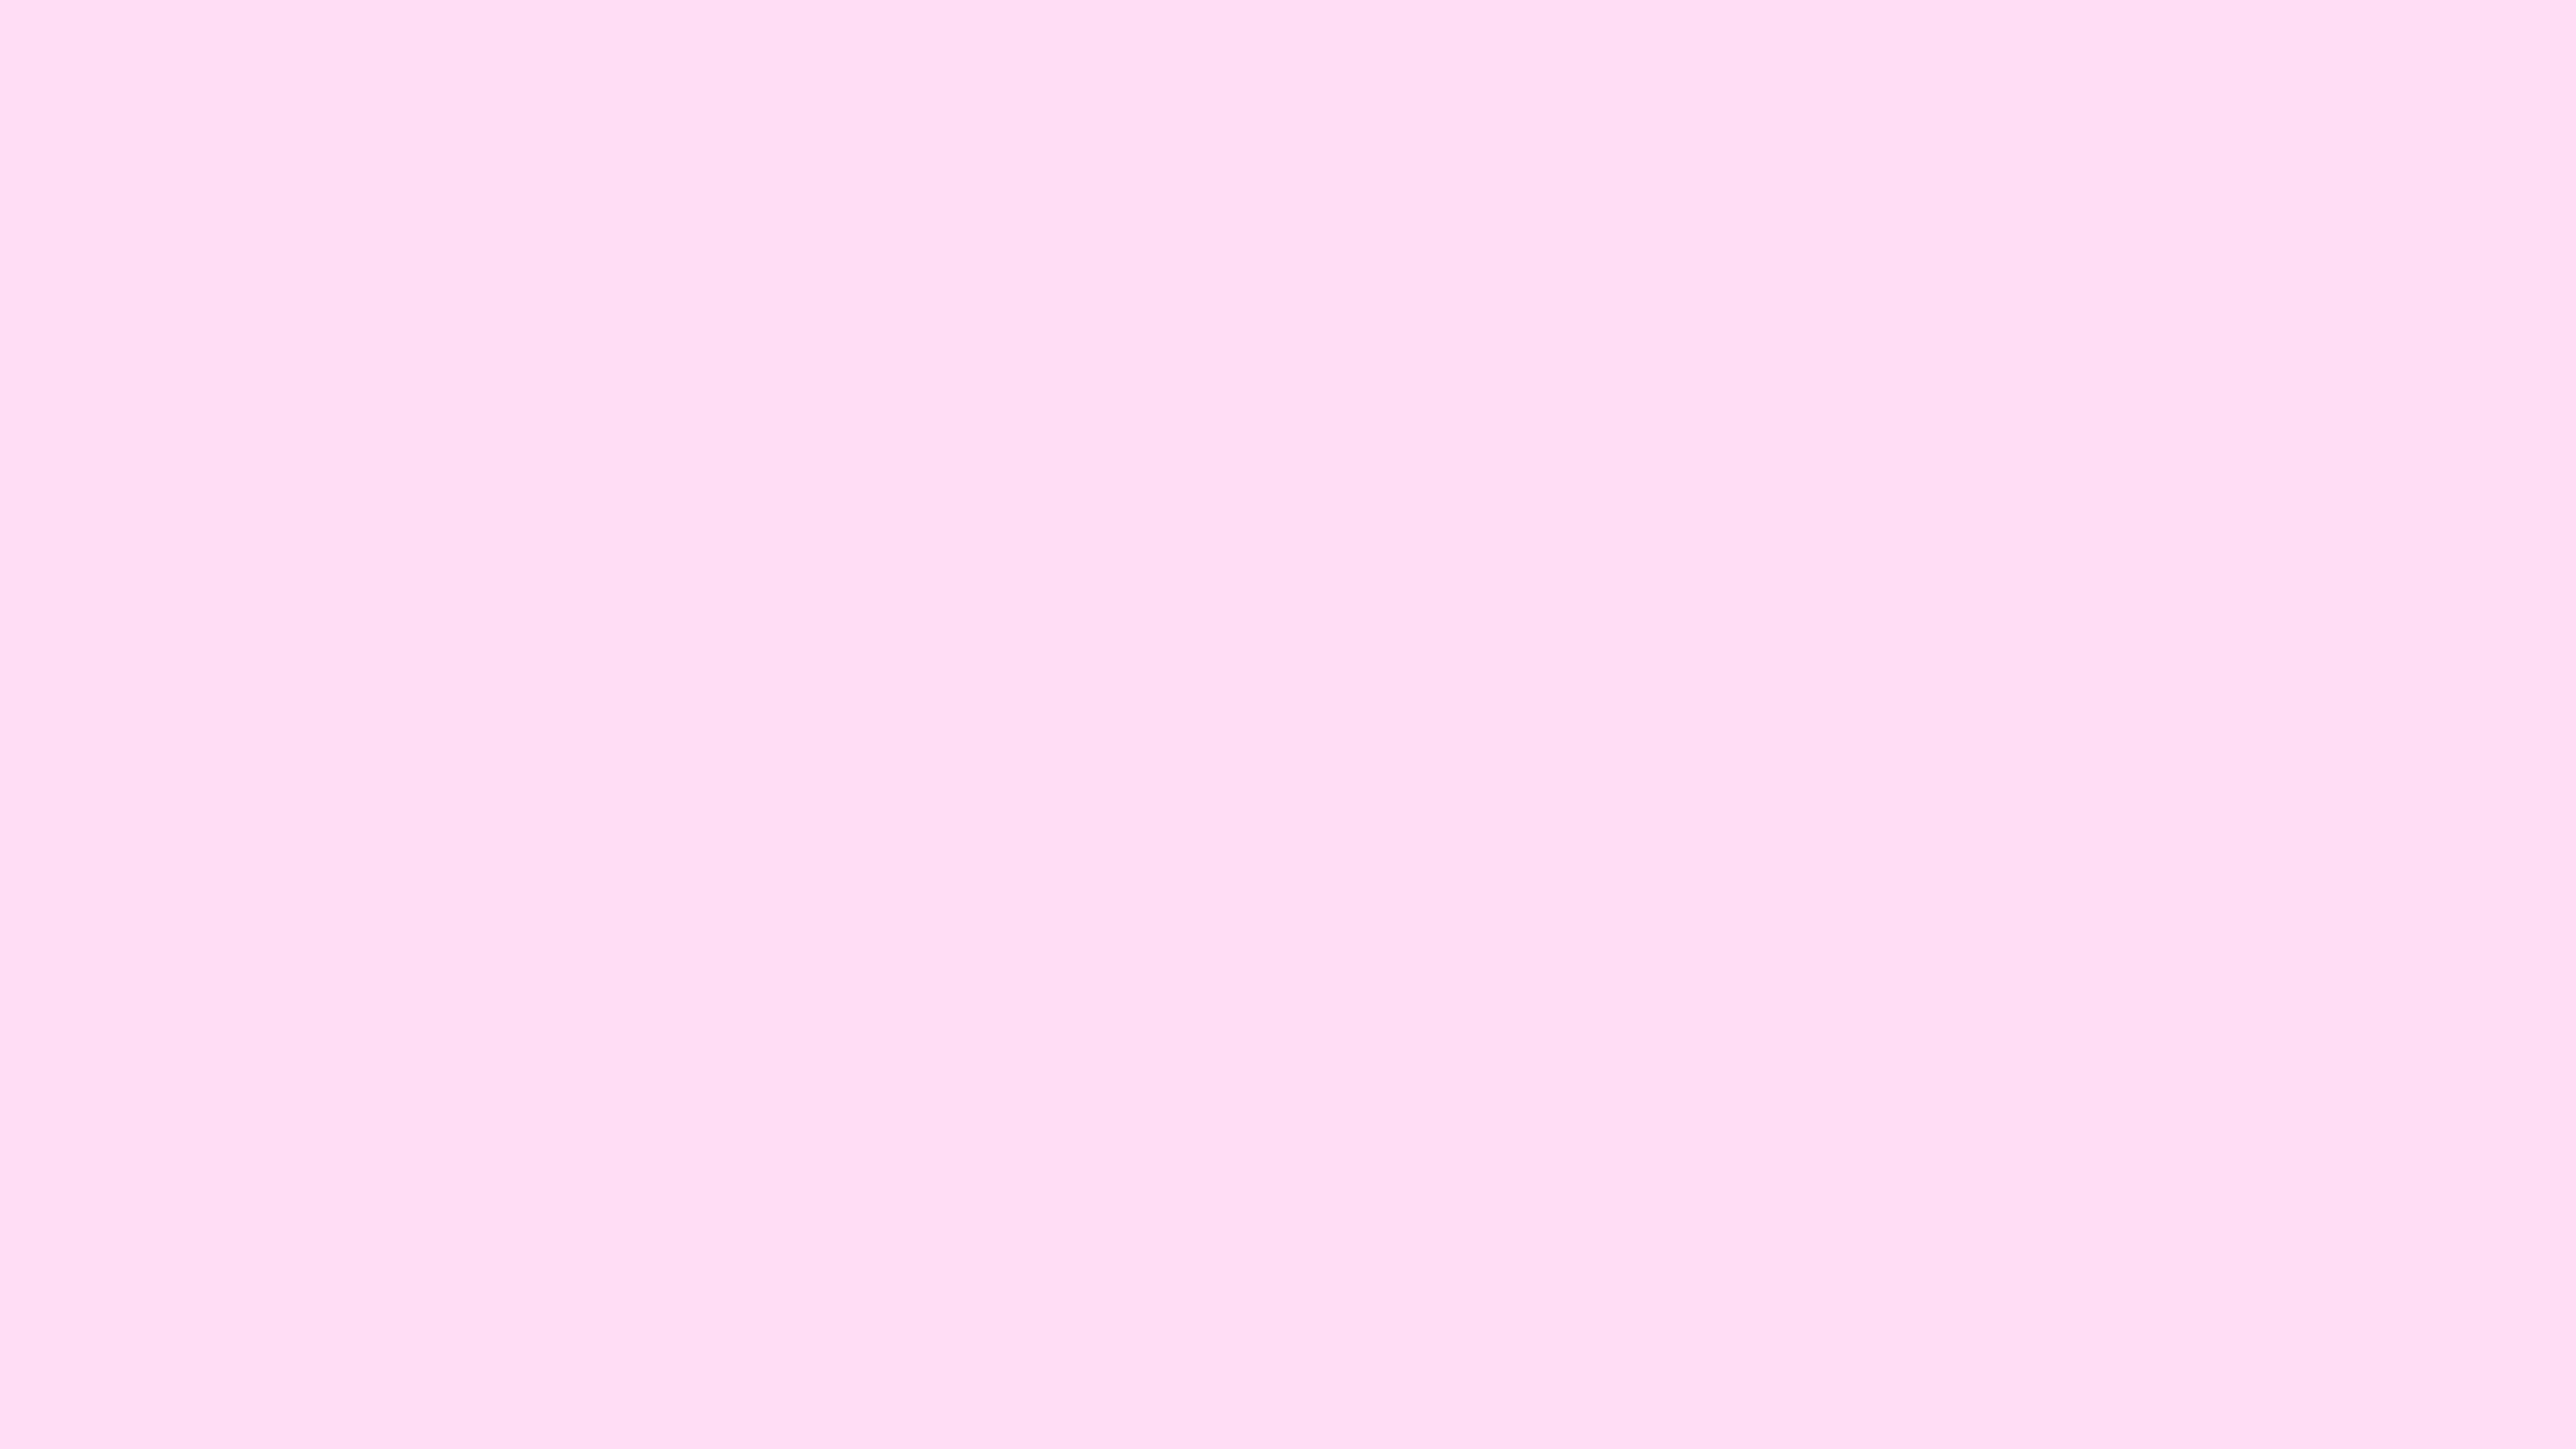 3840x2160 Pink Lace Solid Color Background